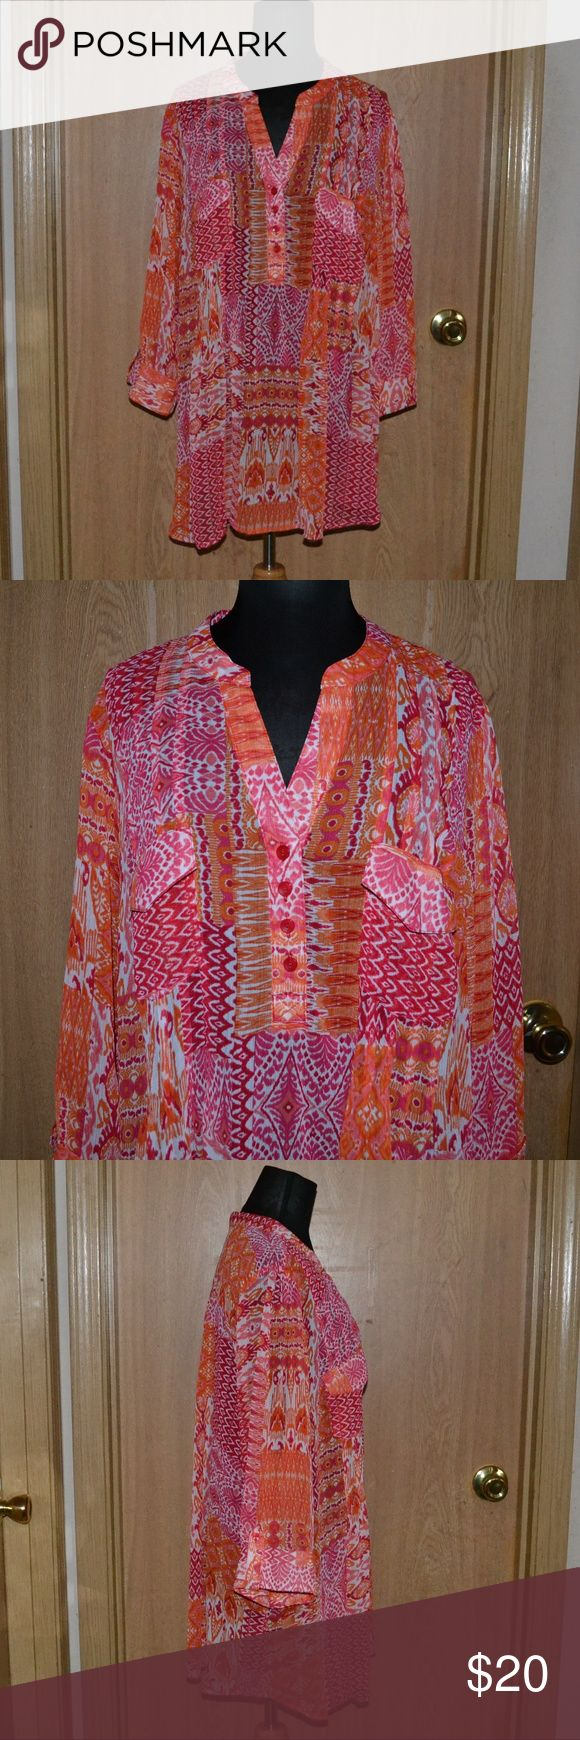 NWT! Zach & Rachel Woman Chiffon blouse Smoke free home! I ship Monday- Friday! No holds or trades!   A beautiful colorful, bright orange, pink & white 4 button down semi sheer summer blouse size 3X. comes with an extra button. By the brand Zach & Rachel Woman  new with tags! 100% polyester. Perfect for summer & vacations. Zac & Rachel Tops Blouses